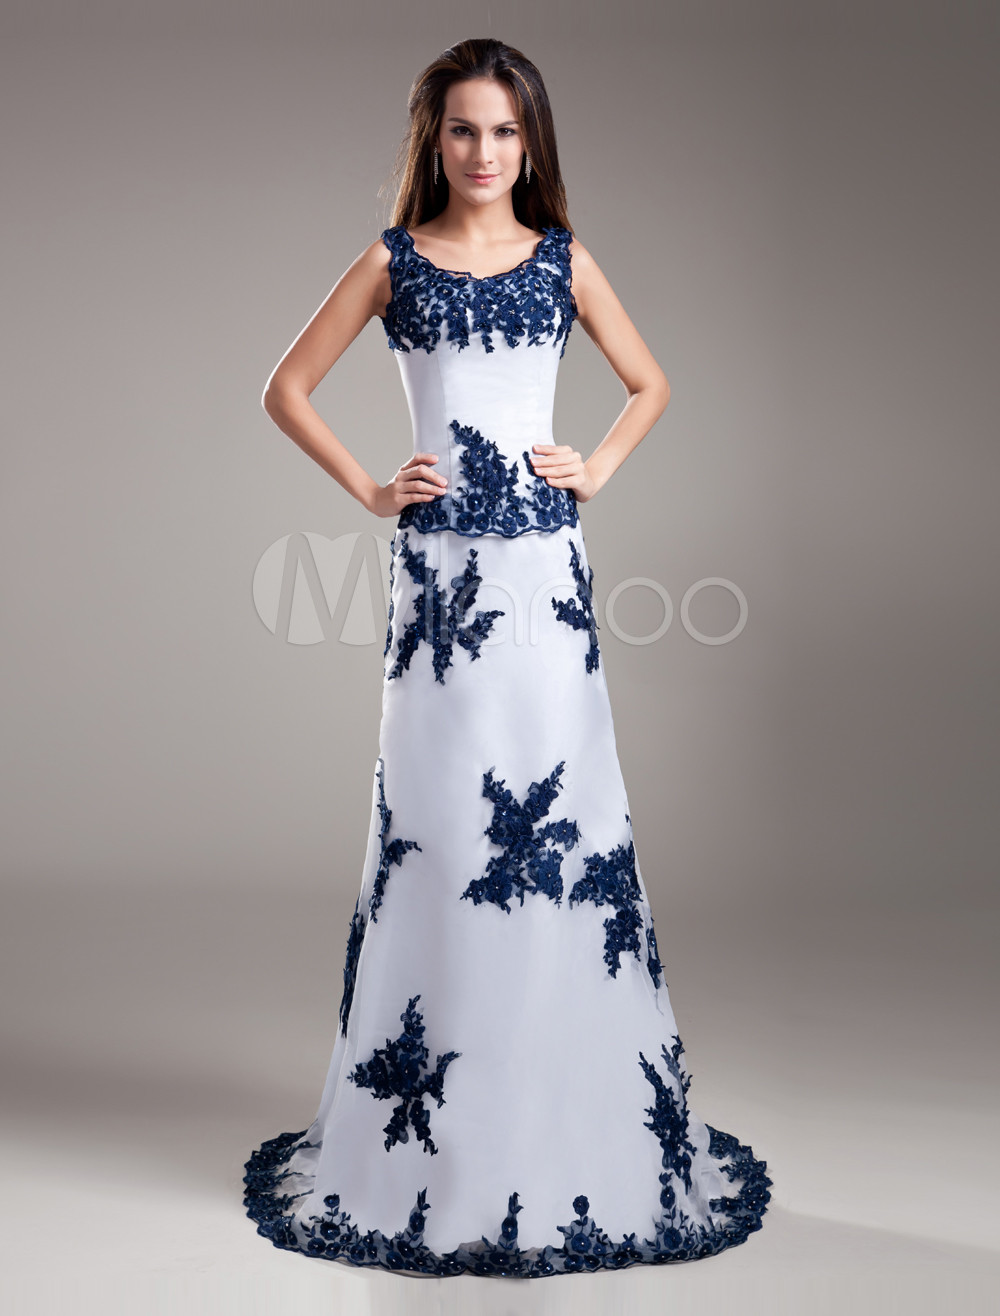 White Organza A-line Prom Dress with Square Neck Sleeveless Applique (Wedding Prom Dresses) photo